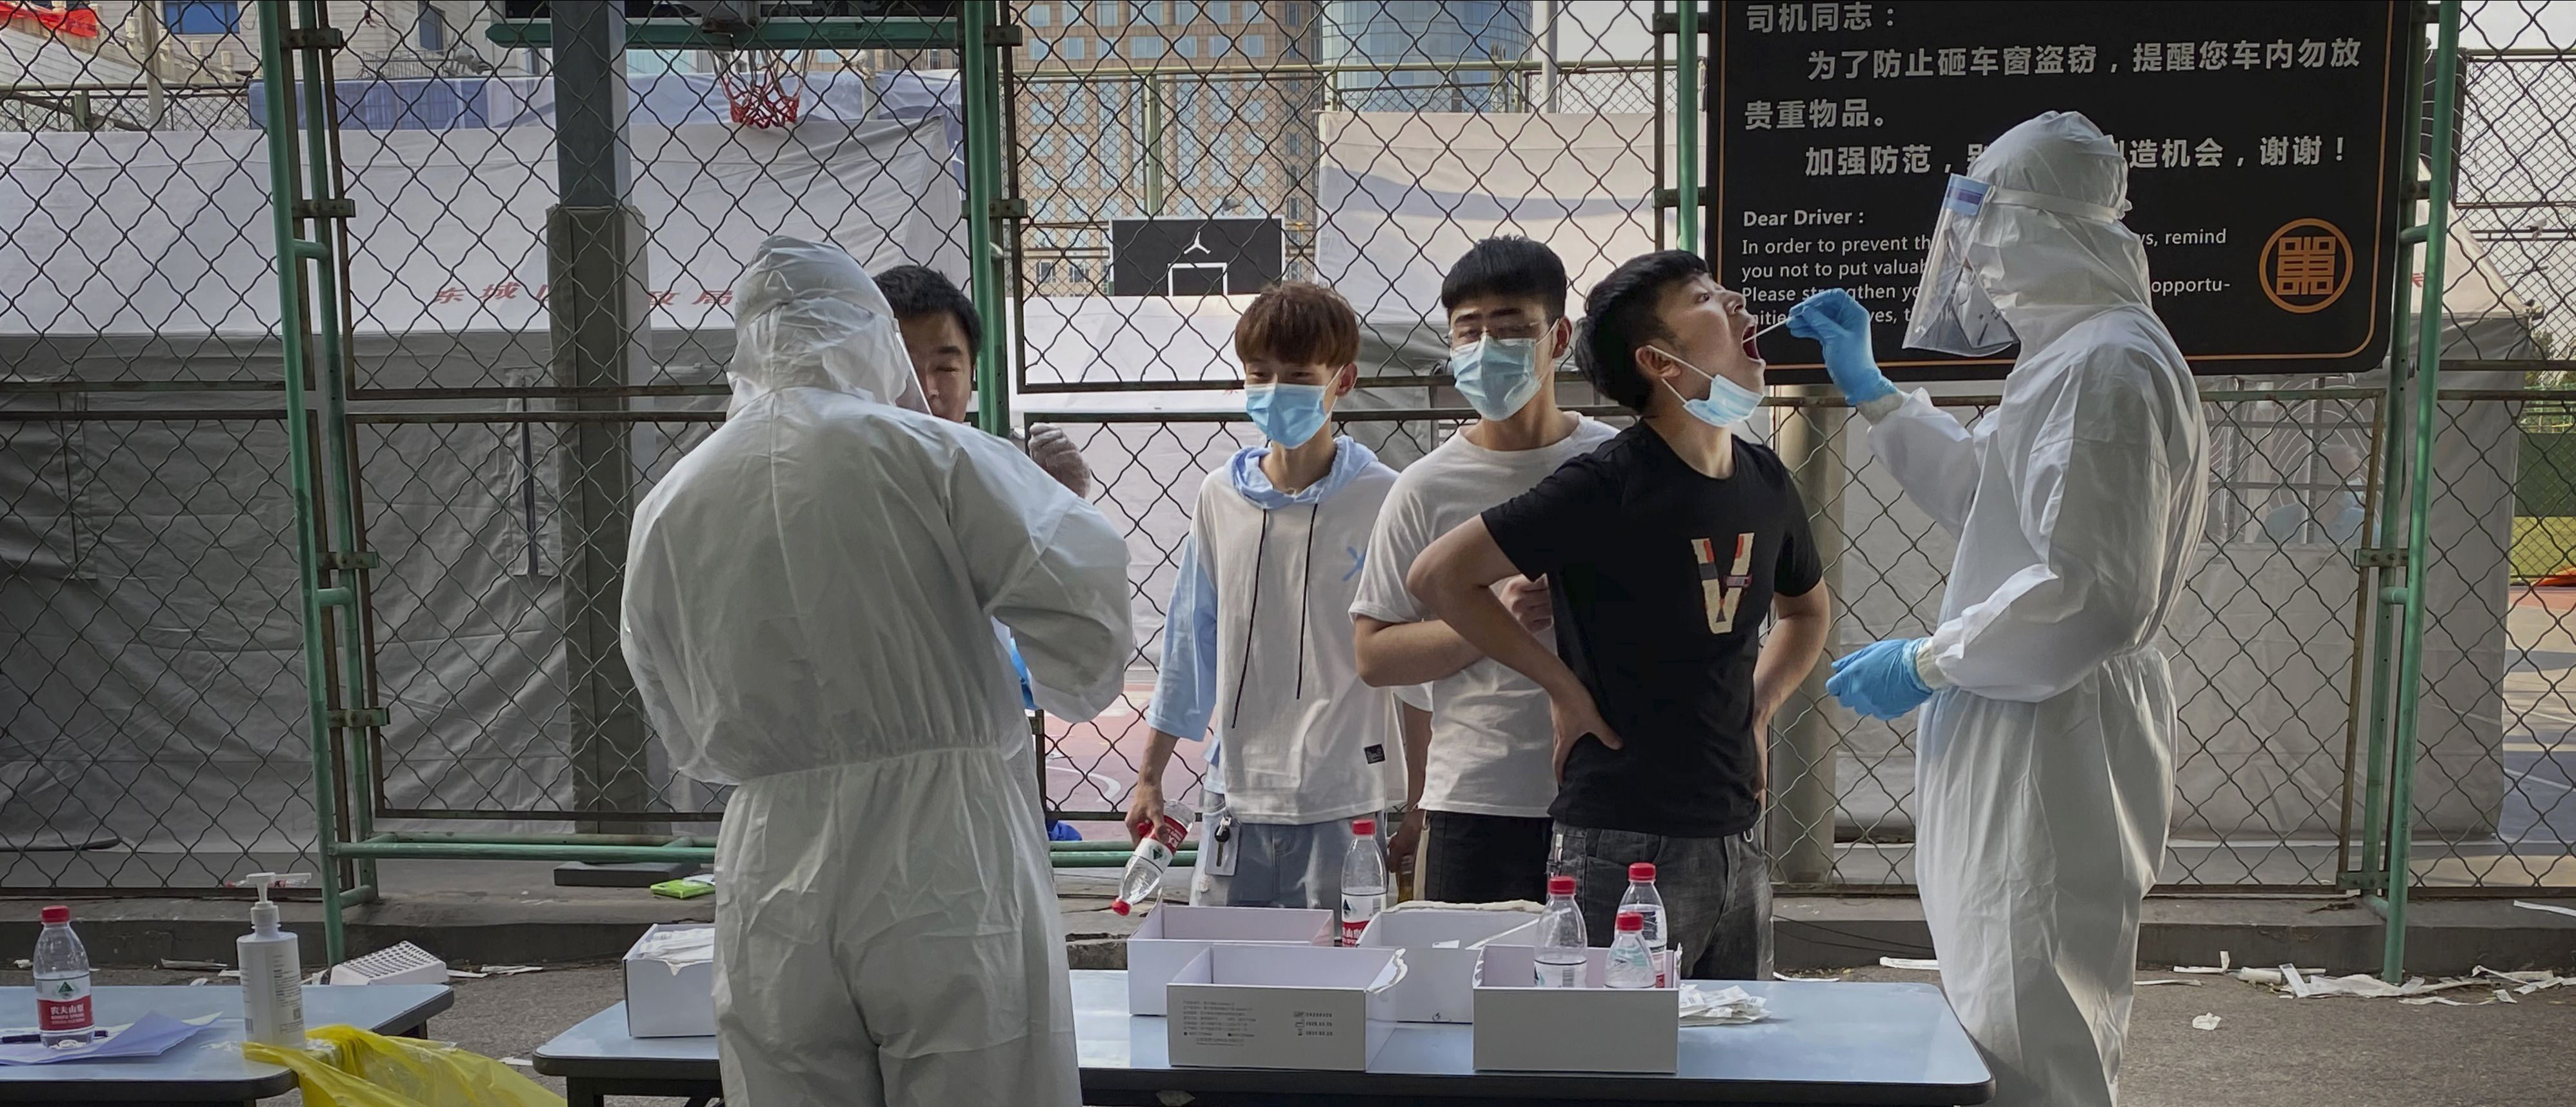 BEIJING, CHINA - JUNE 16:(eds note: photo taken with mobile phone) A Chinese epidemic control worker wears a protective suit and mask while performing a nucleic acid test for COVID-19 on a man who has had contact with the Xinfadi Wholesale Market or someone who has, at a testing center on June 16, 2020 in Beijing, China. Authorities are trying to contain the outbreak linked to the Xinfadi wholesale food market, Beijing's biggest supplier of produce and meat. Several neighborhoods have been locked down and at least two other food markets were closed, as tens of thousands of people are being urged to get tested for COVID-19 at sites set up around the city. The outbreak has triggered fears of a second wave of infection after 56 straight days with no domestically transmitted cases in the capital. More than 8,000 vendors and staff at Xinfadi have already been tested, according to city officials, who are using contact tracing to reach an estimated 200,000 people who have visited the market since May 30. (Photo by Kevin Frayer/Getty Images)